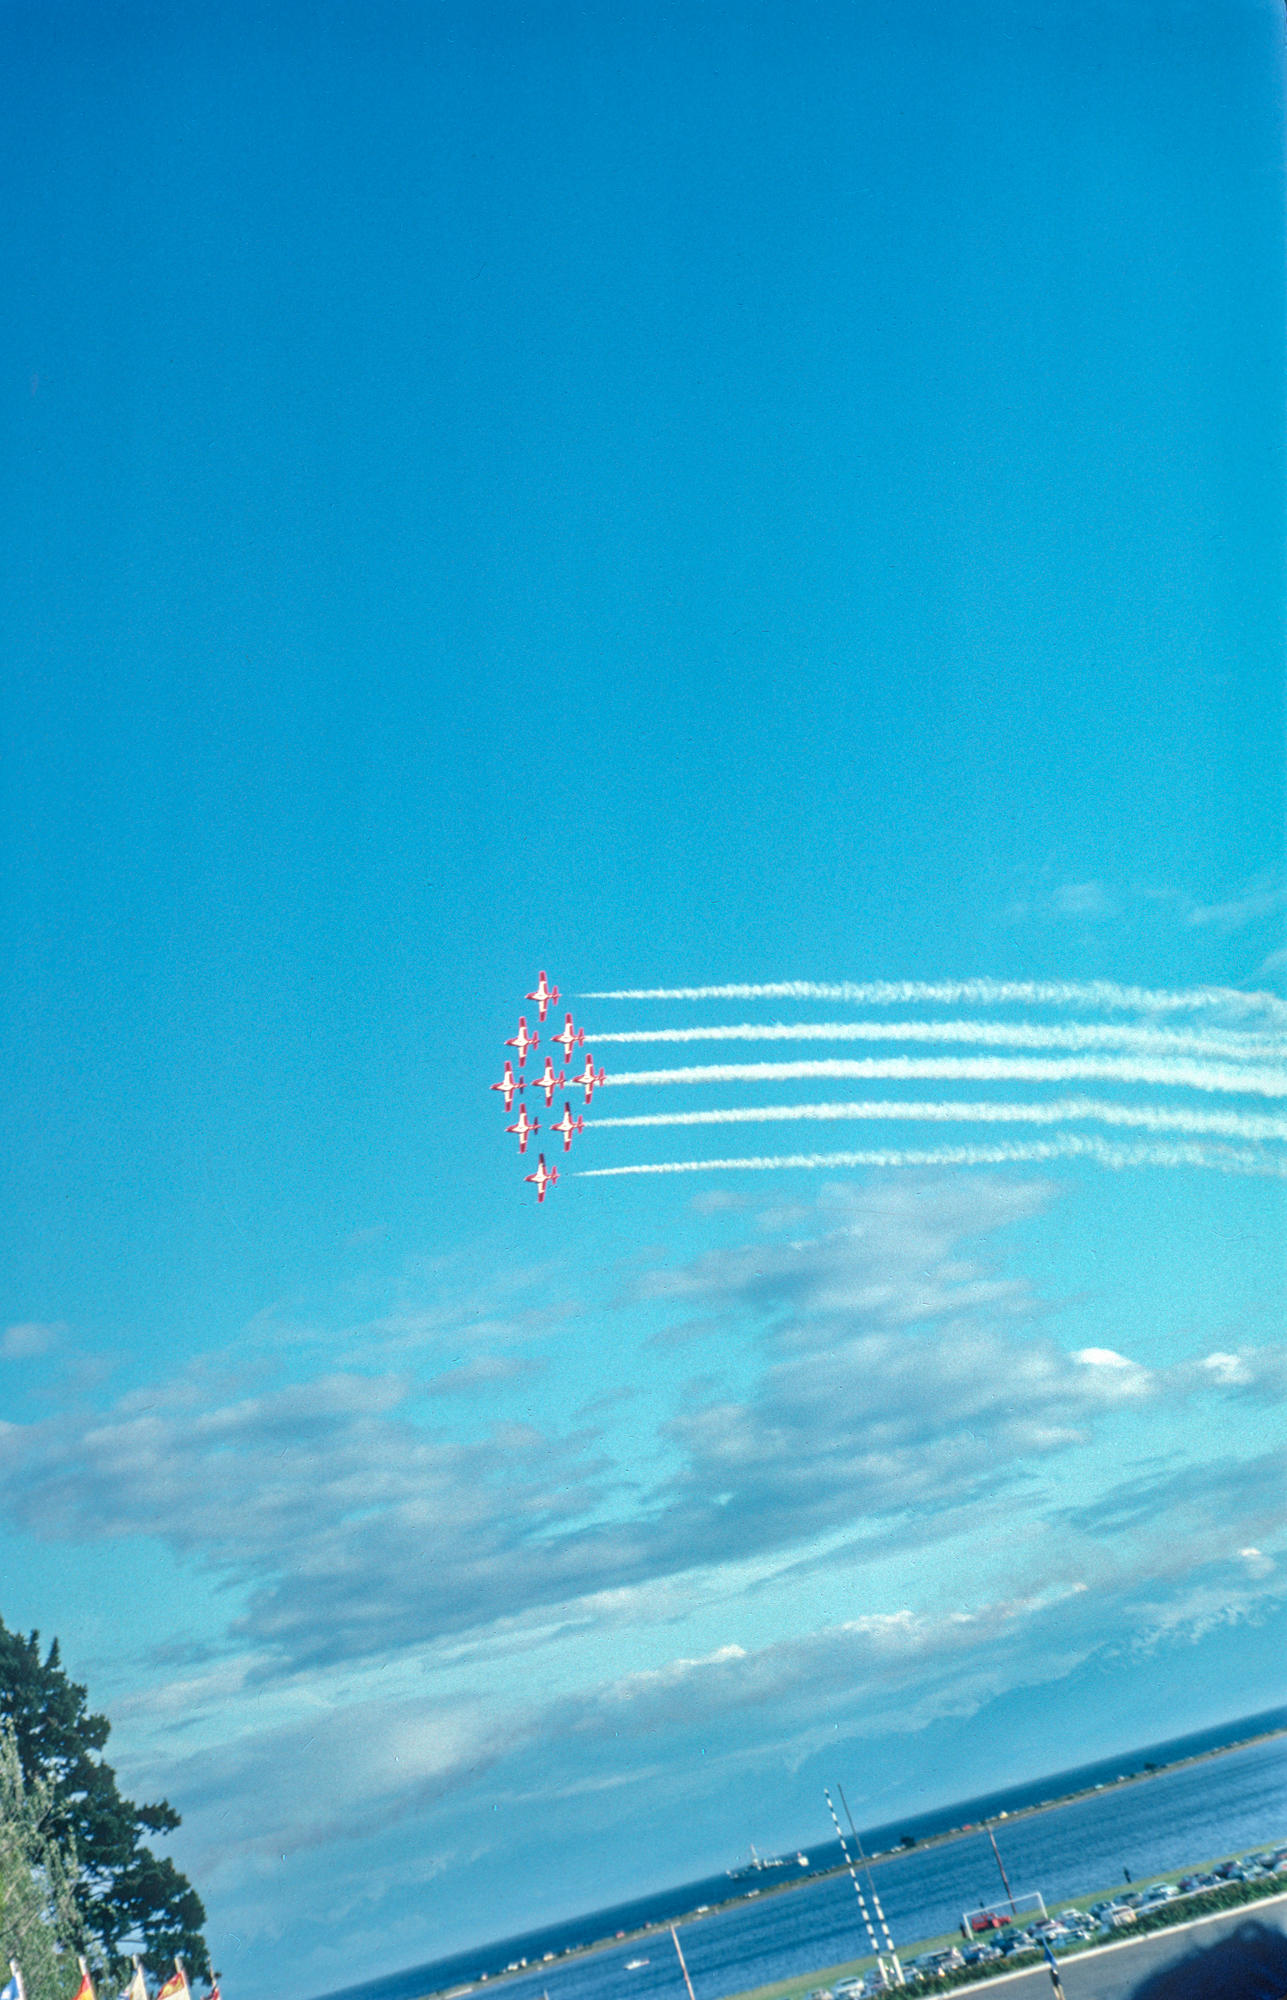 flypast by the snowbirds